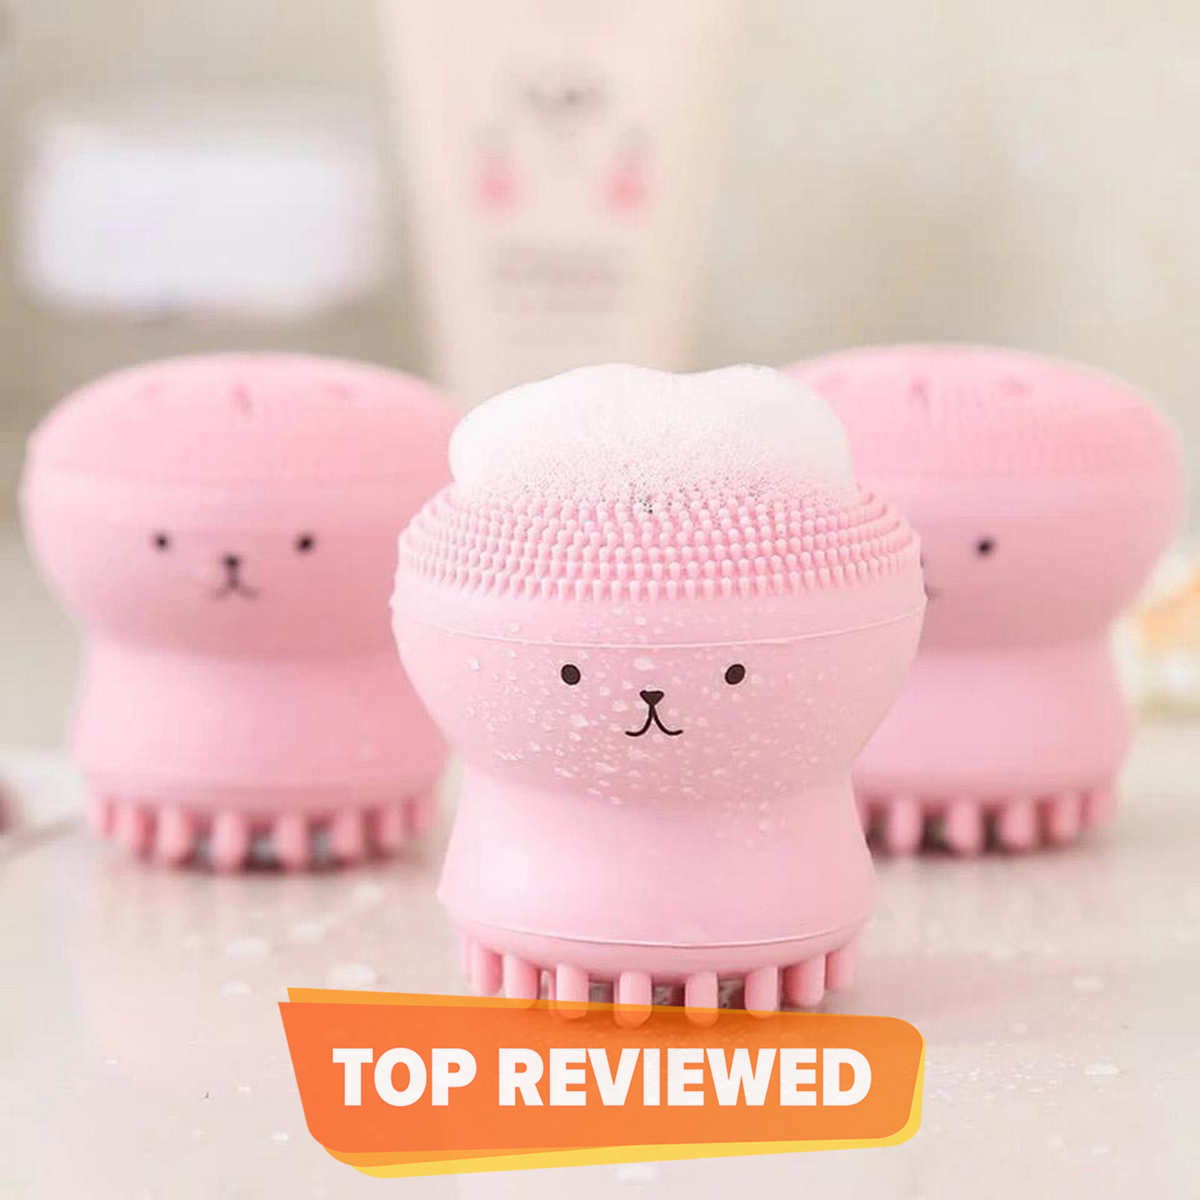 Skin Care Lovely Small Octopus Shape Silicone Facial Cleaning Brush Face and makeup Washing Brush Skin Care Deep Pore Cleaning Exfoliator manicure pedicure